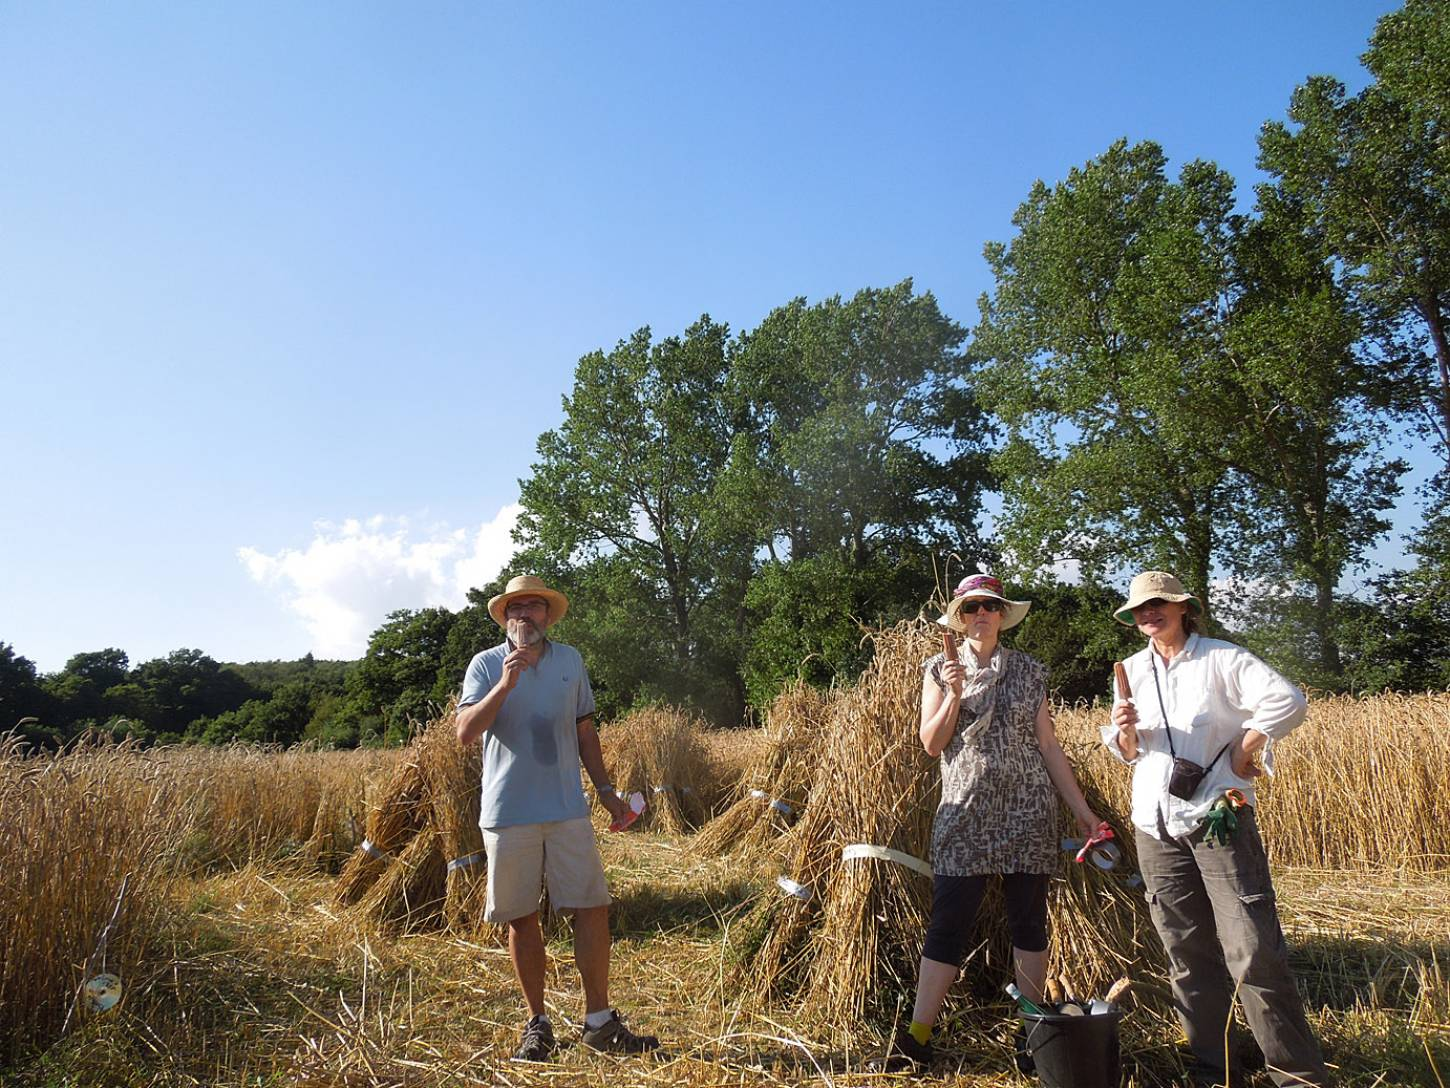 WoWo manual harvest - lolly break day #3 - 5:13pm&nbsp;8<sup>th</sup>&nbsp;Aug.&nbsp;'15